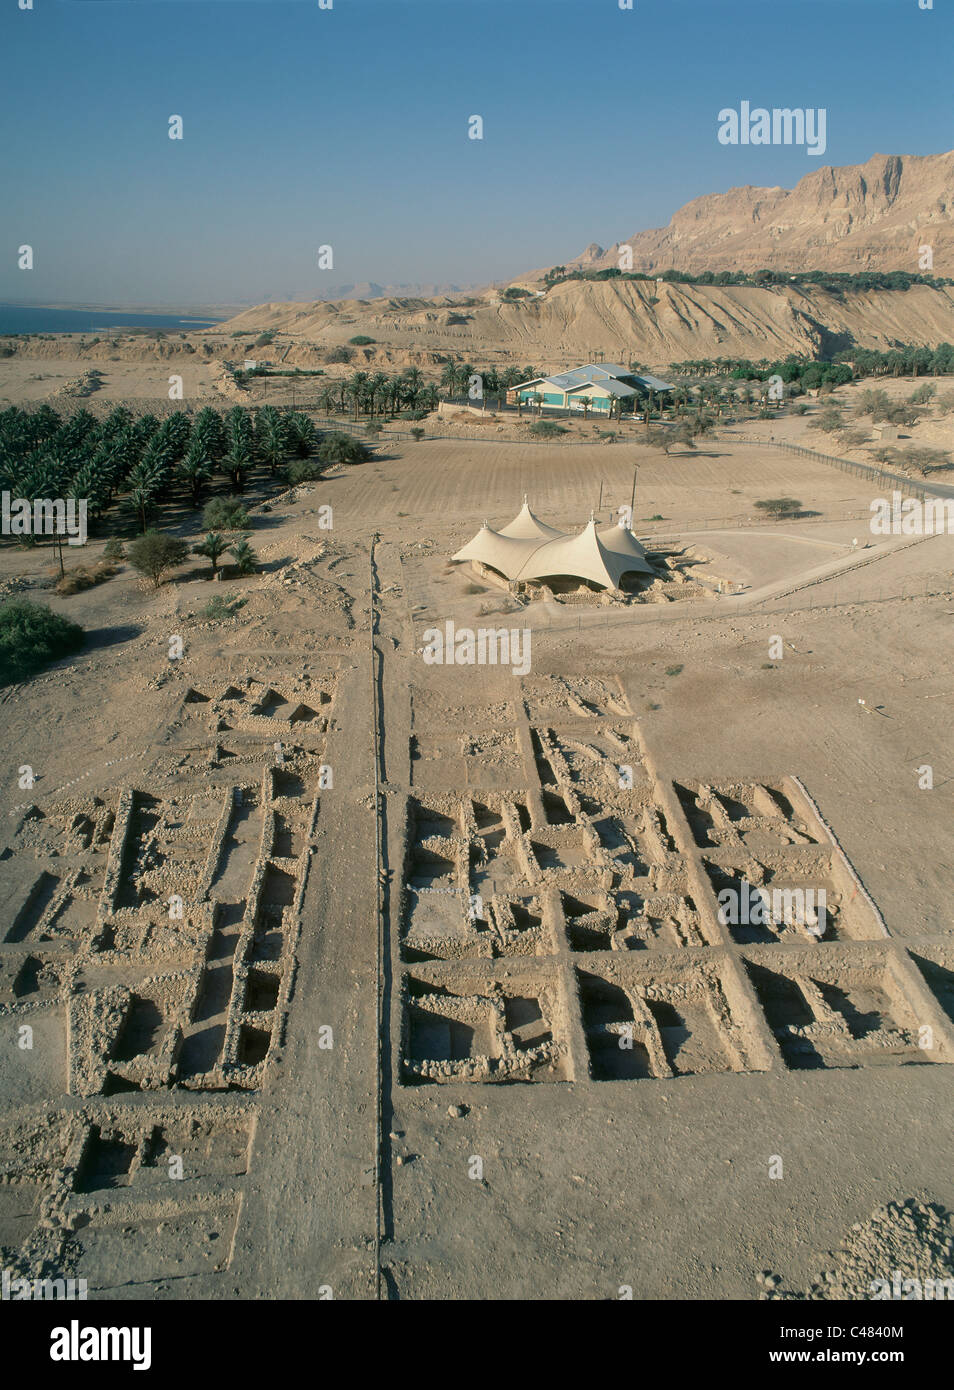 Aerial photograph of the ancient synagogue of En Gedi in the Judean Desert near the Dead sea - Stock Image